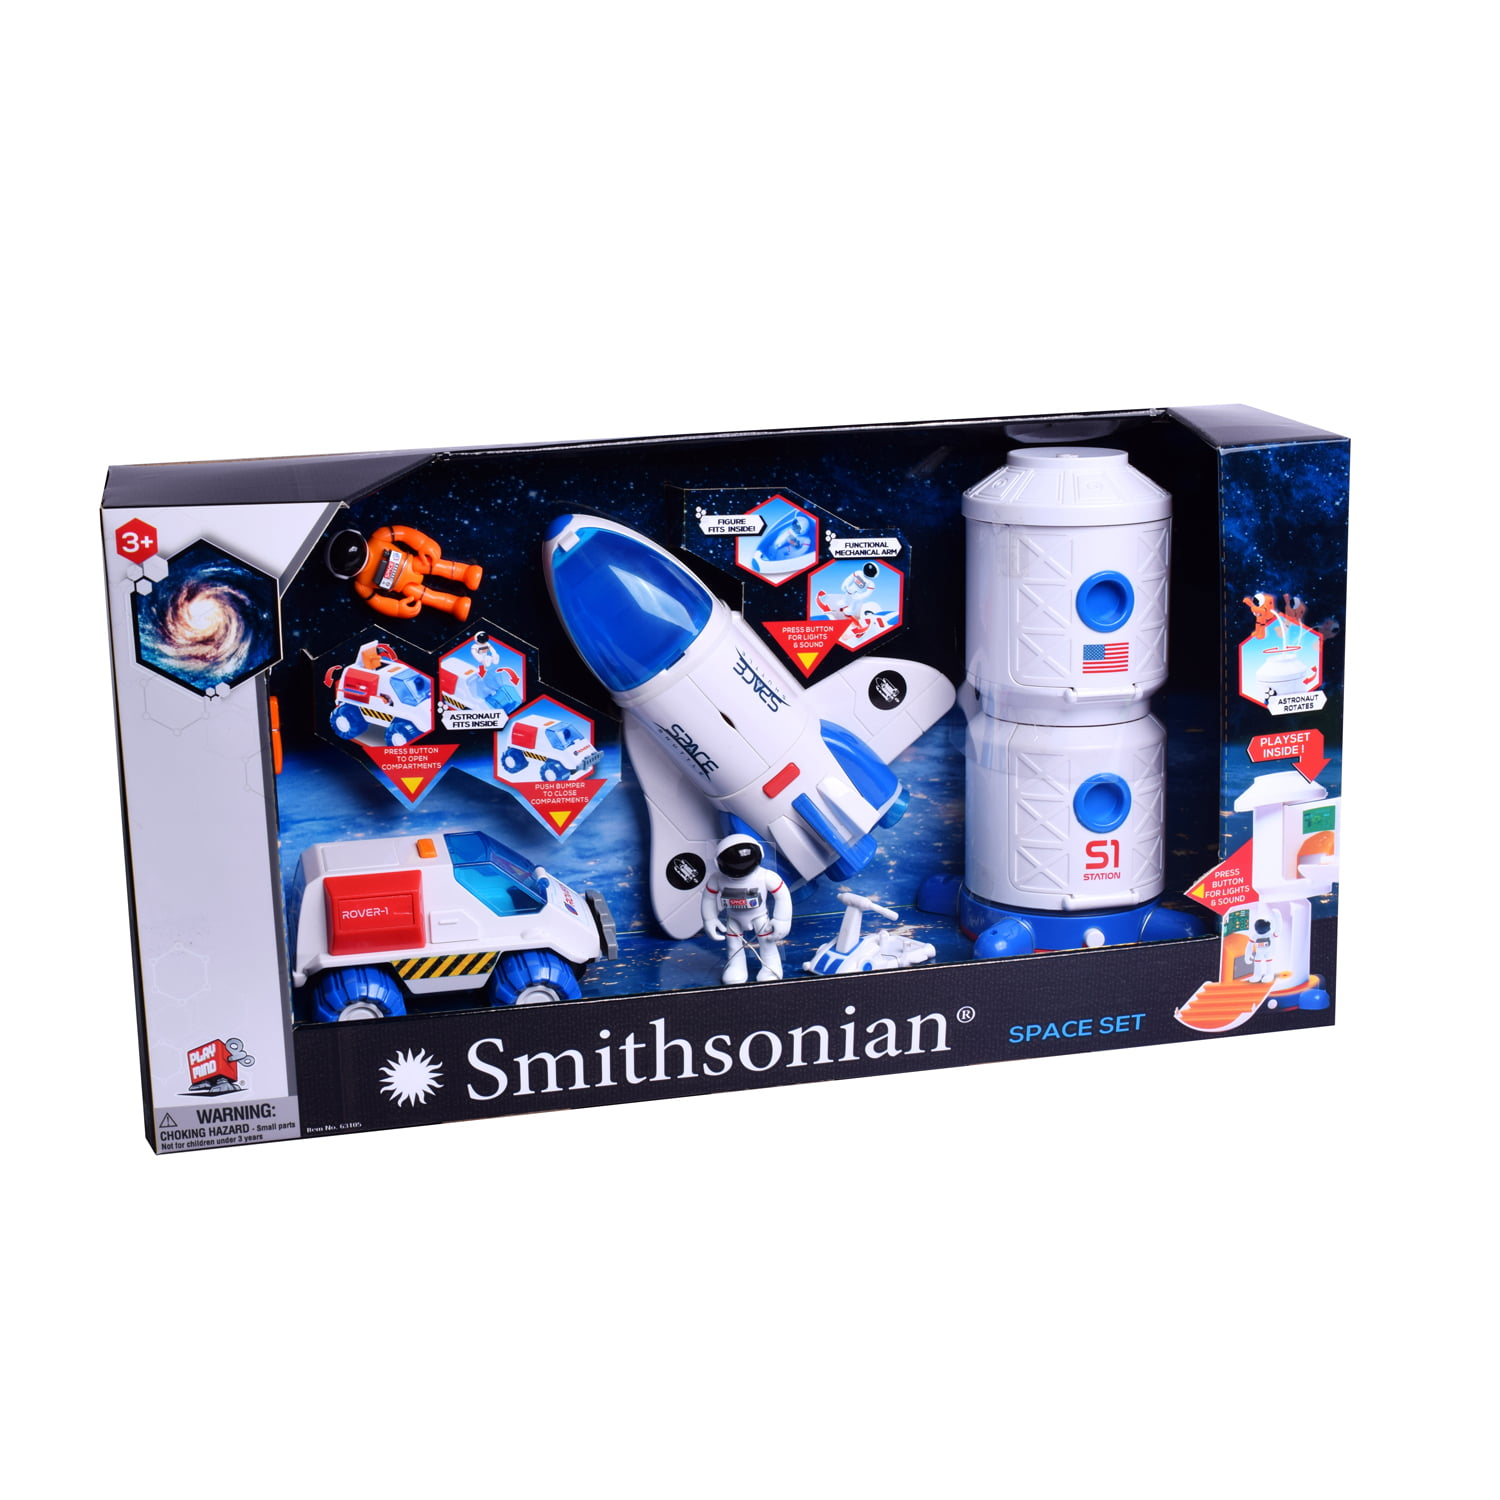 Smithsonian Space Set with Space Rover, Shuttle, Space Station by PLAYMIND LTD.